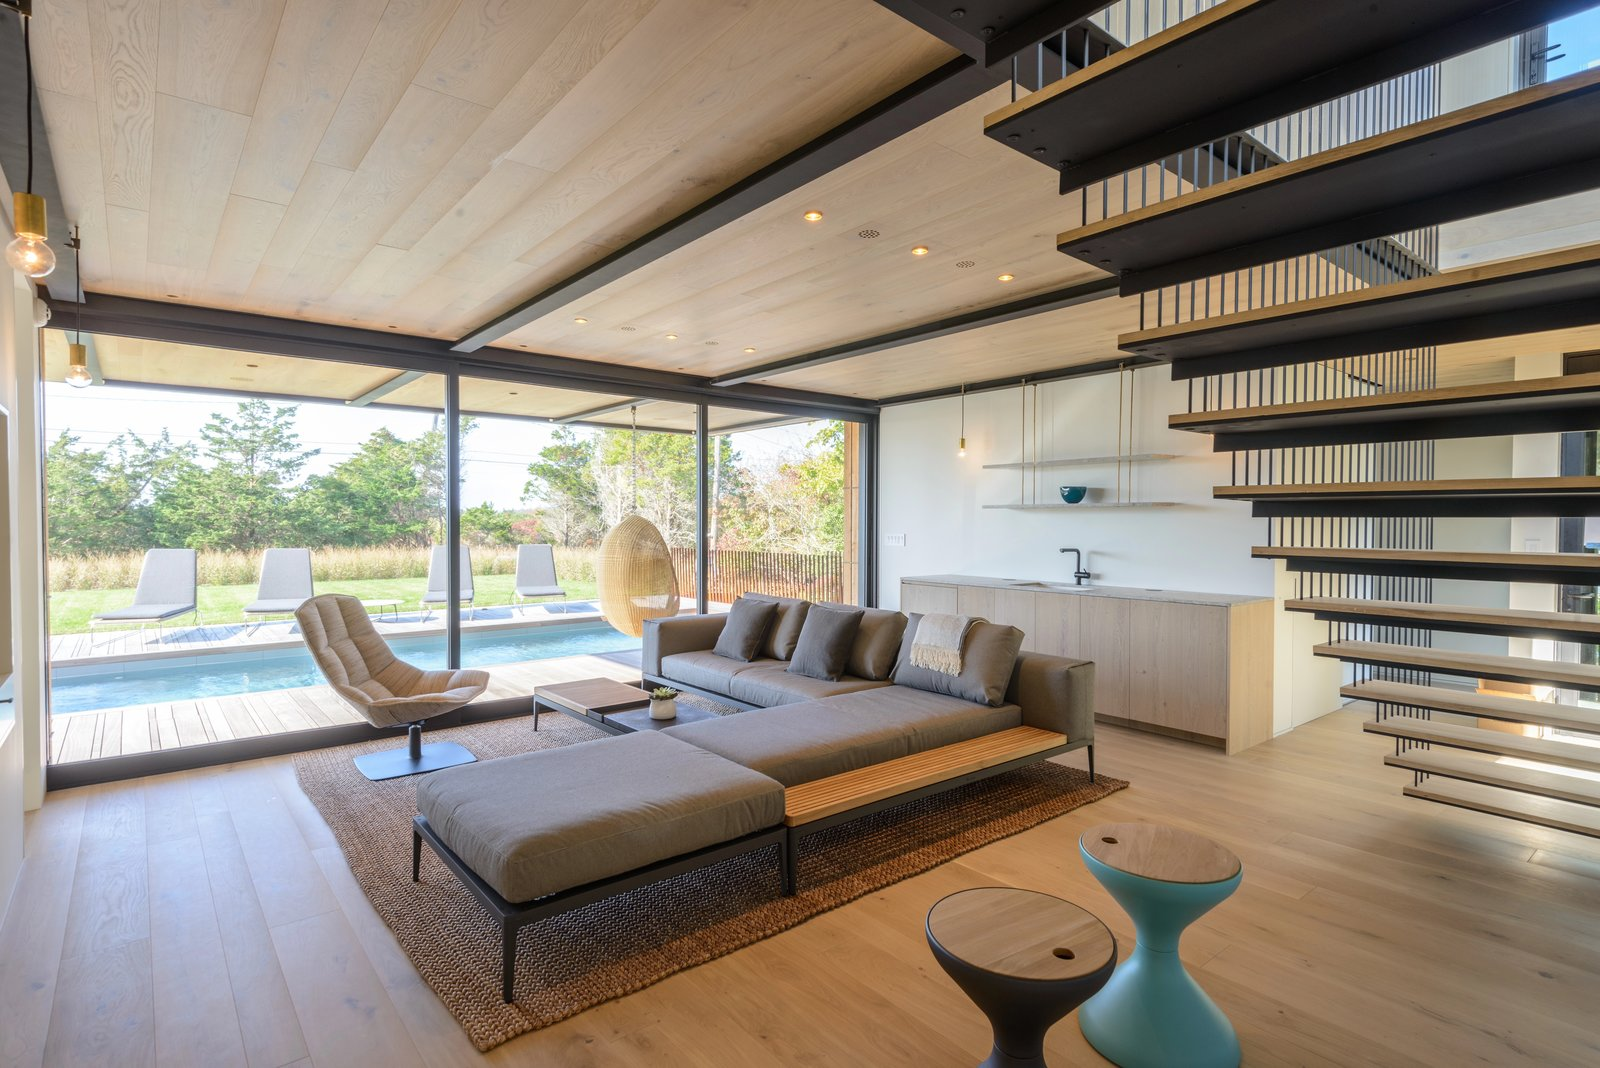 Tagged: Living Room, Bench, Sofa, Ottomans, Coffee Tables, Chair, Light Hardwood Floor, Ceiling Lighting, and Recessed Lighting. Amagansett Landmark by The Corcoran Group